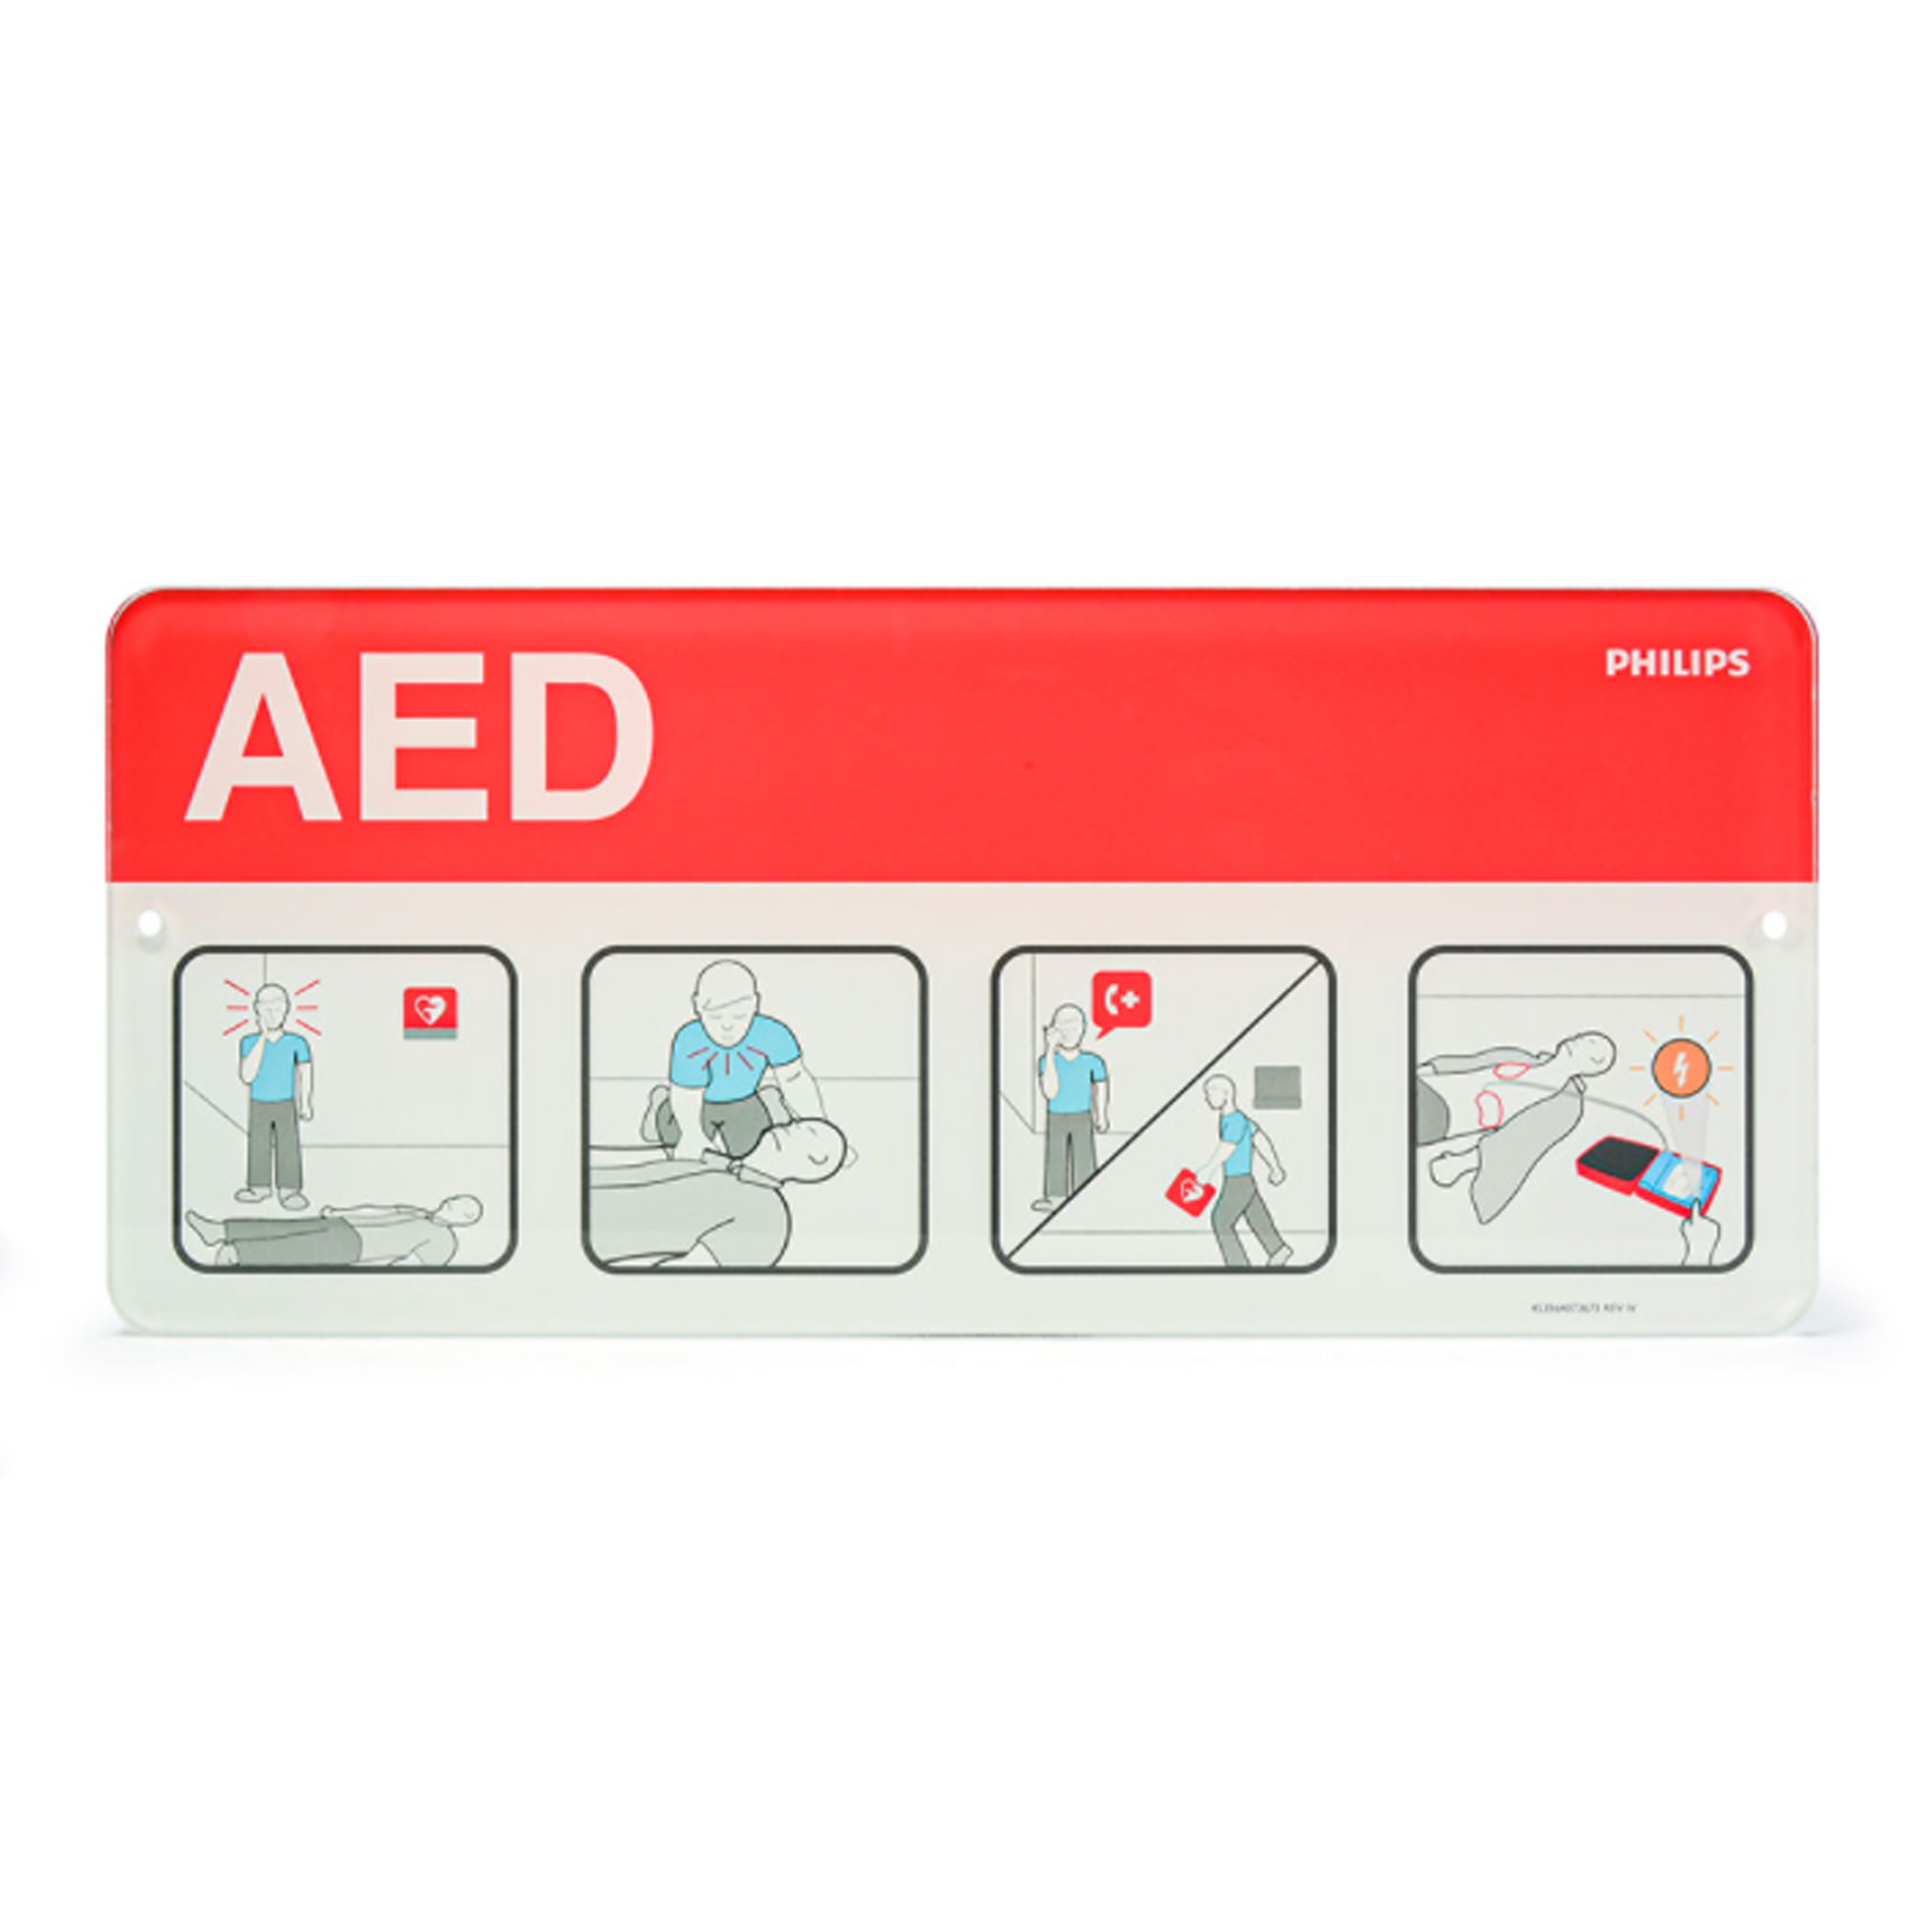 Philips AED Awareness Sign Placard - Red 989803170901 in Michigan USA